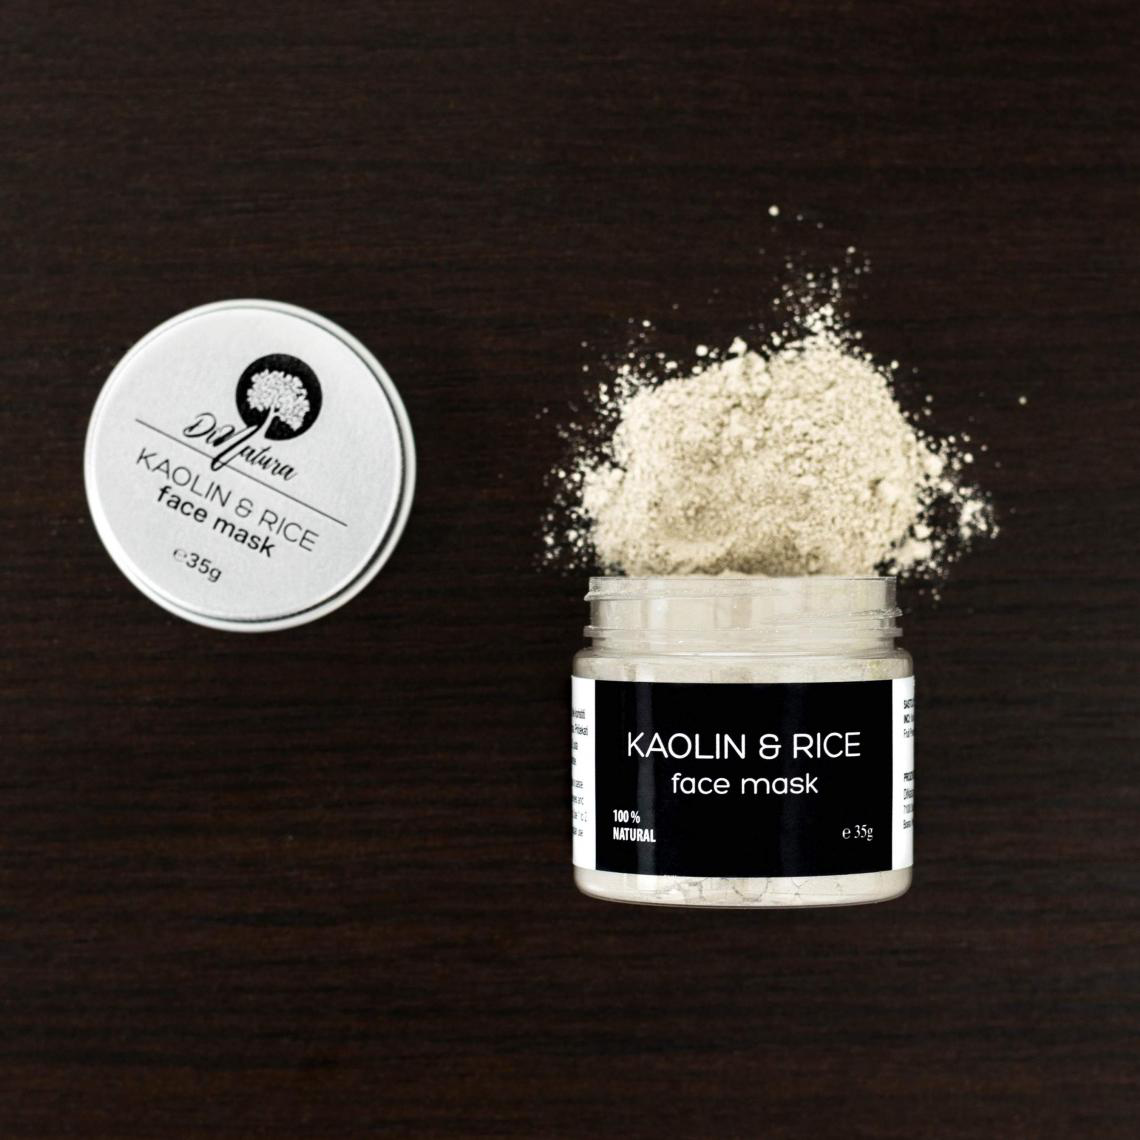 Kaolin & Rice Face Mask